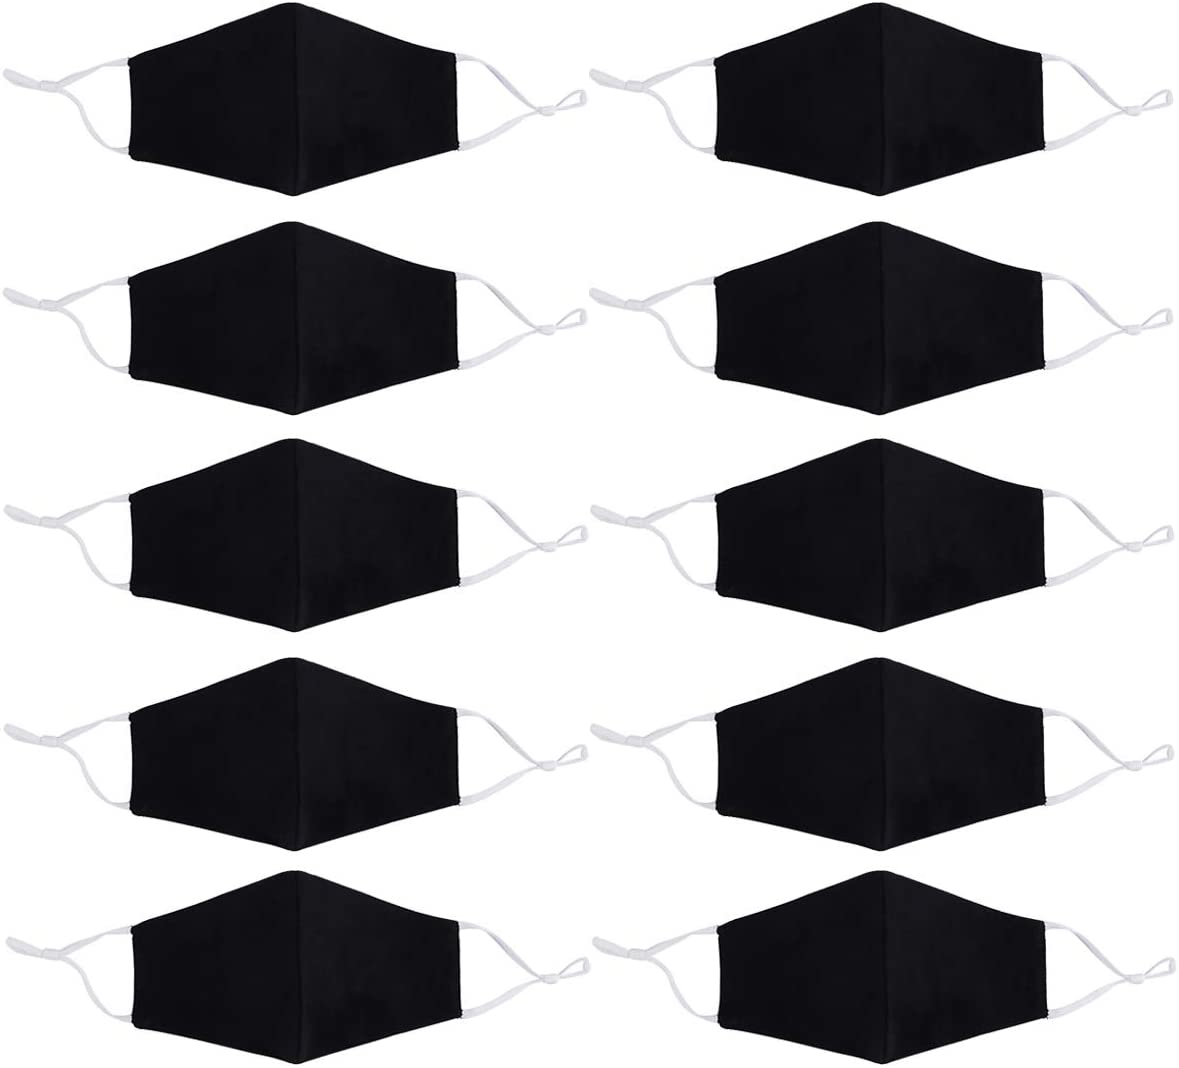 10 pcs Reusable Fabric Face covering Unisex - black comfortable Washable Breathable Outdoor Mouth cloth Covering Protection Men and Women (10)